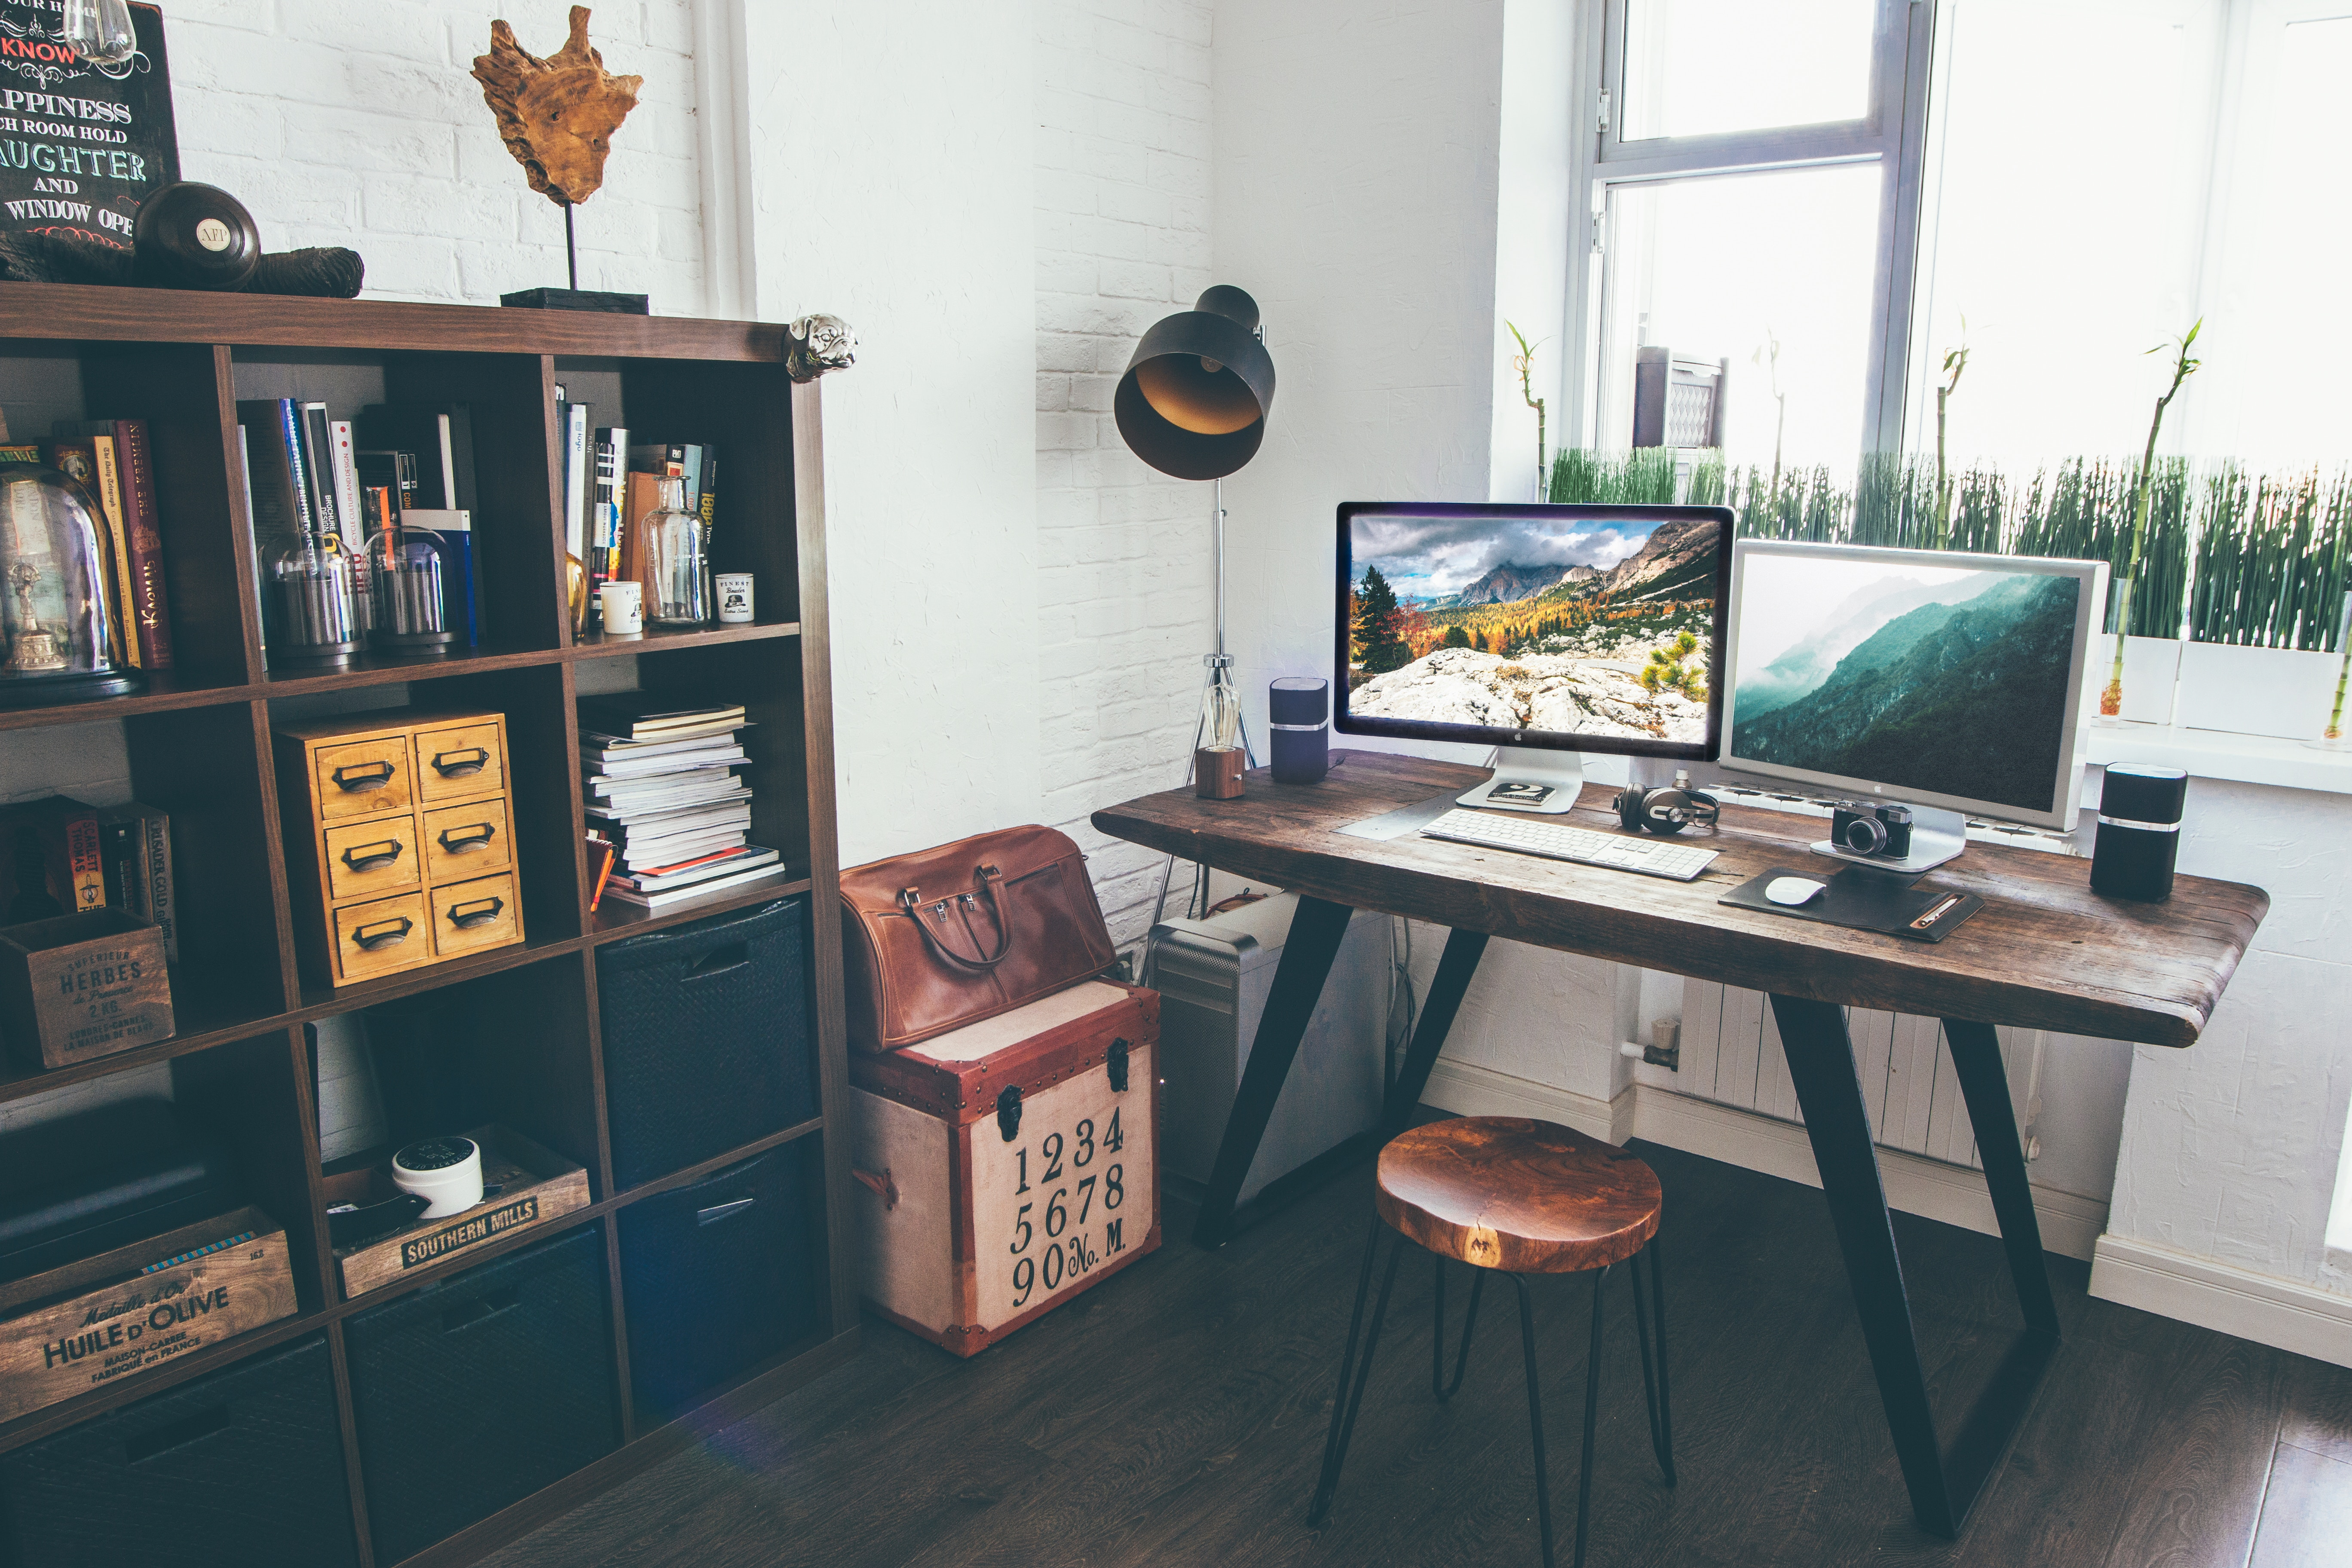 Creating a home workspace, especially if it is imaginatively decorated, can be a great way to promote your business on social media.